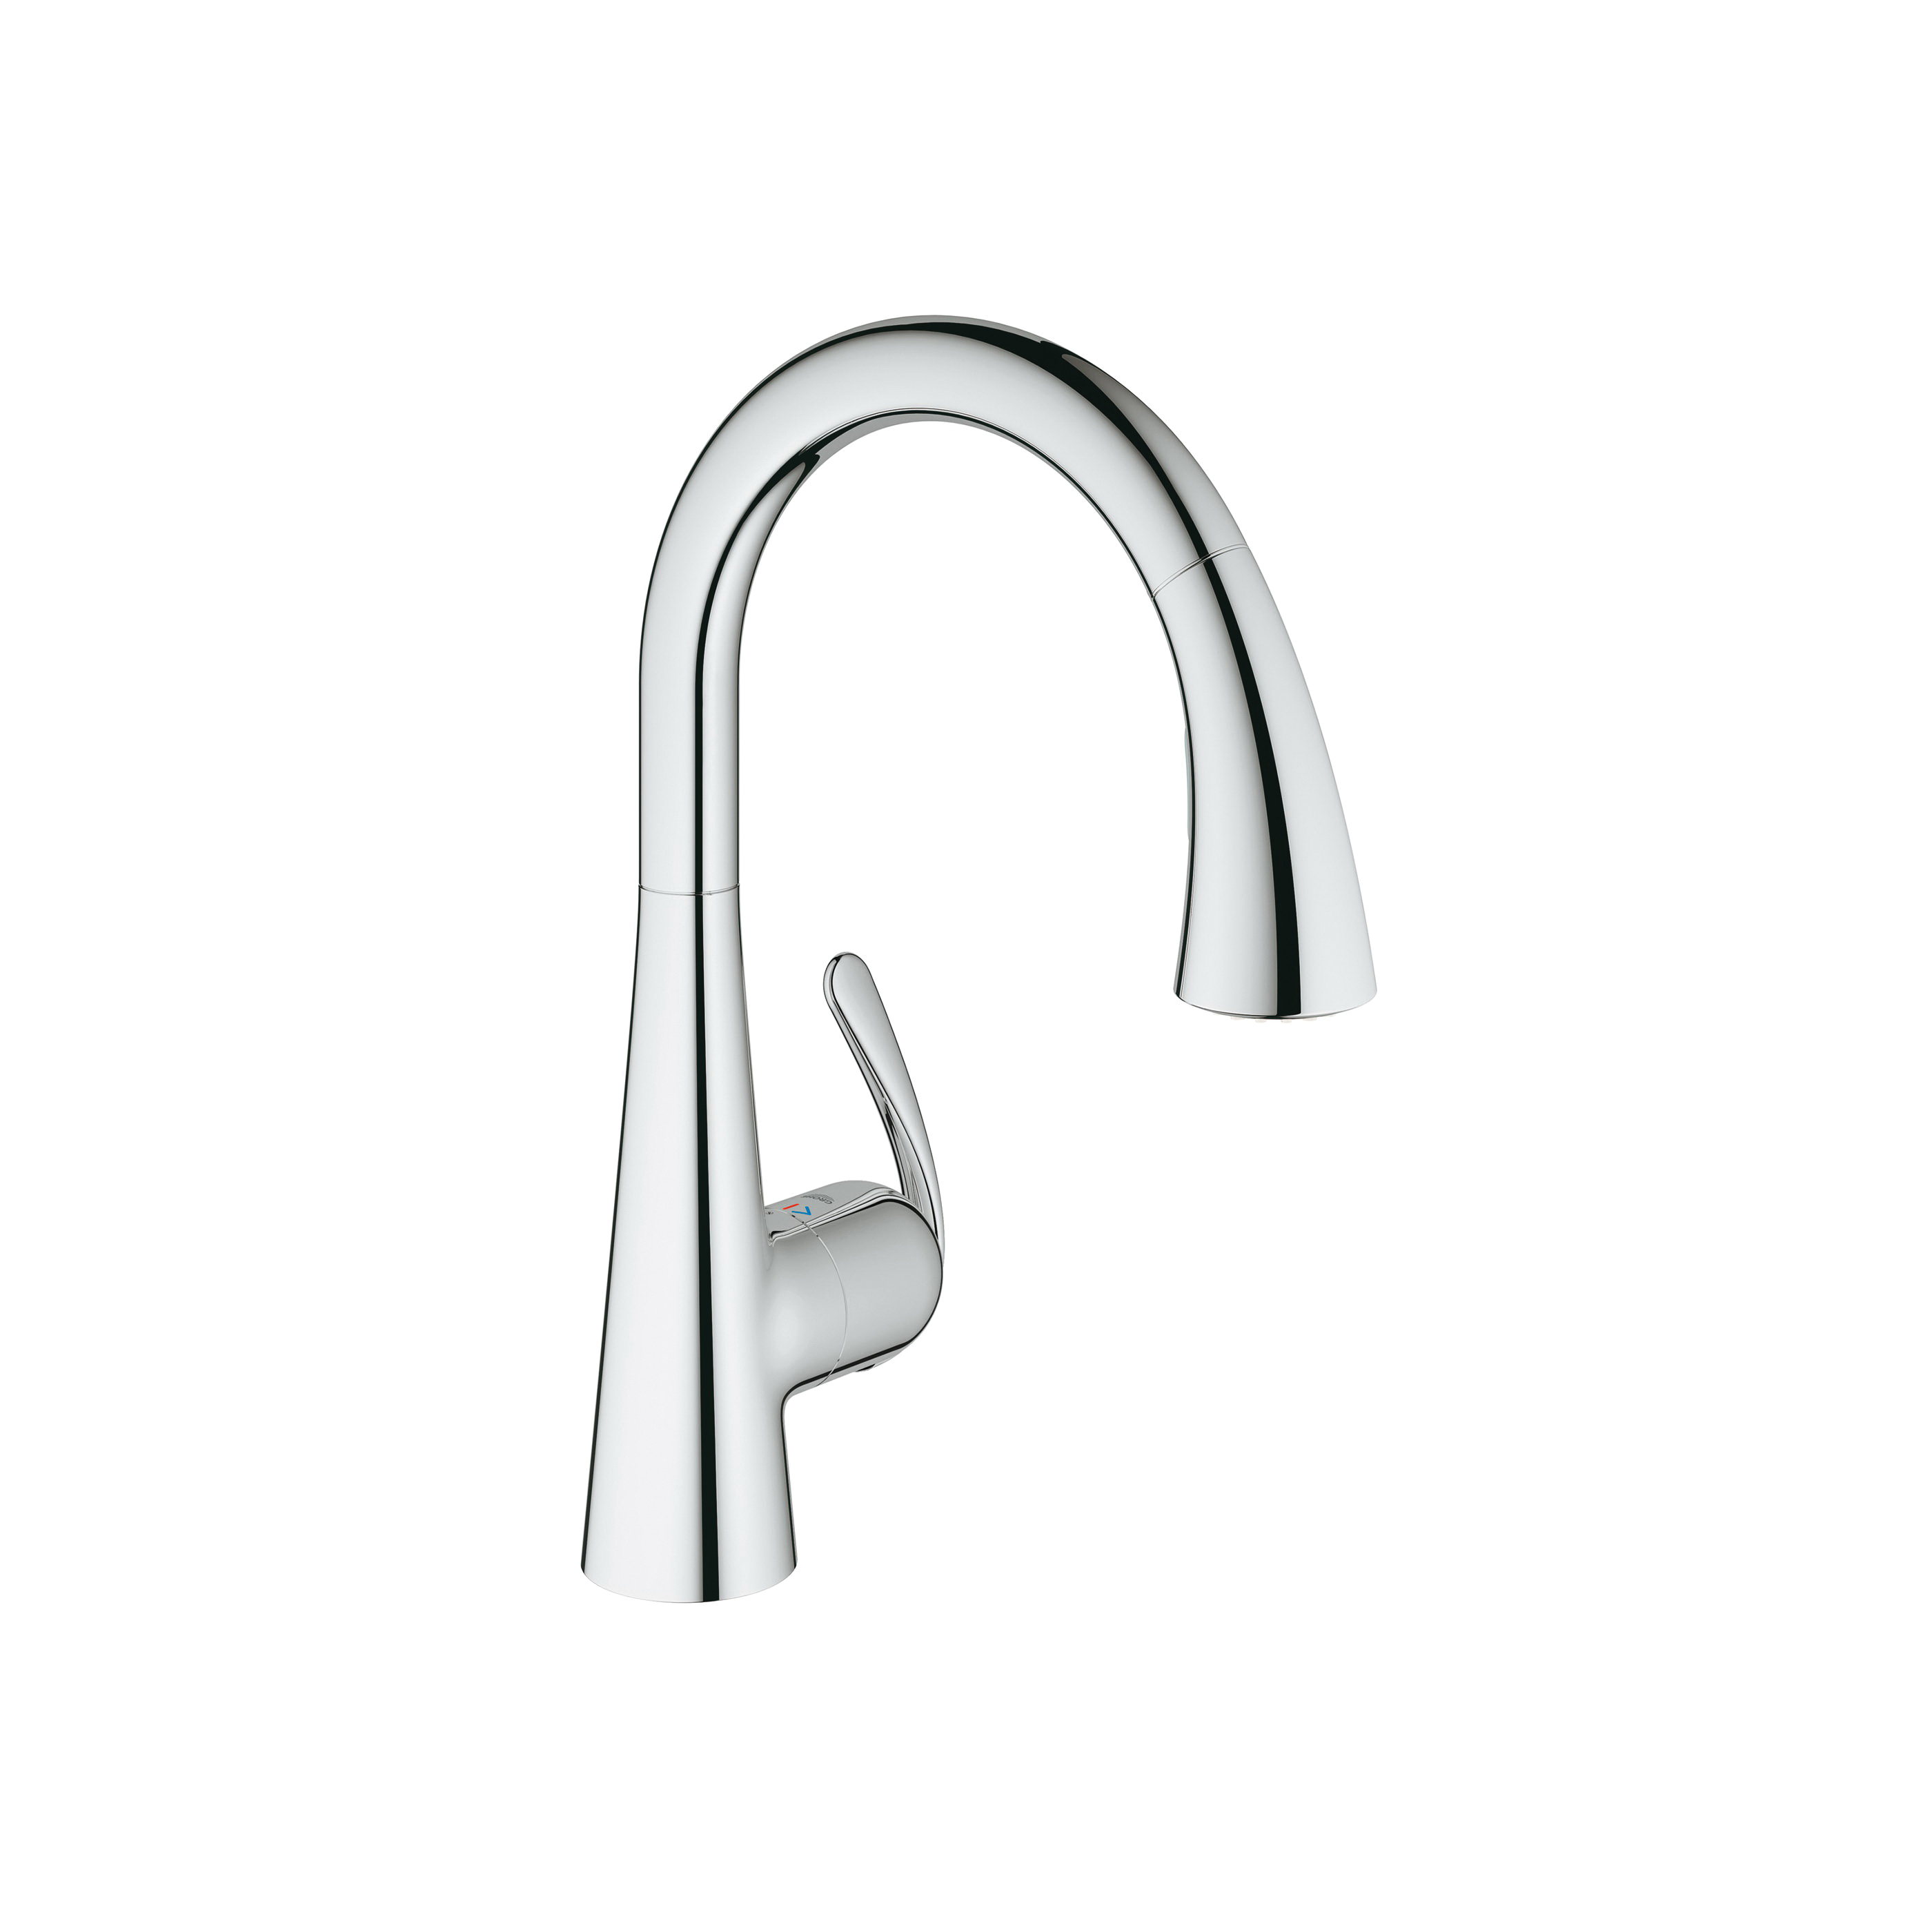 GROHE 30313000 Ladylux™ Cafe Foot Control Kitchen Faucet With Dual Spray, 1.75 gpm, 1 Faucet Hole, StarLight® Chrome, 1 Handle, Import, Residential